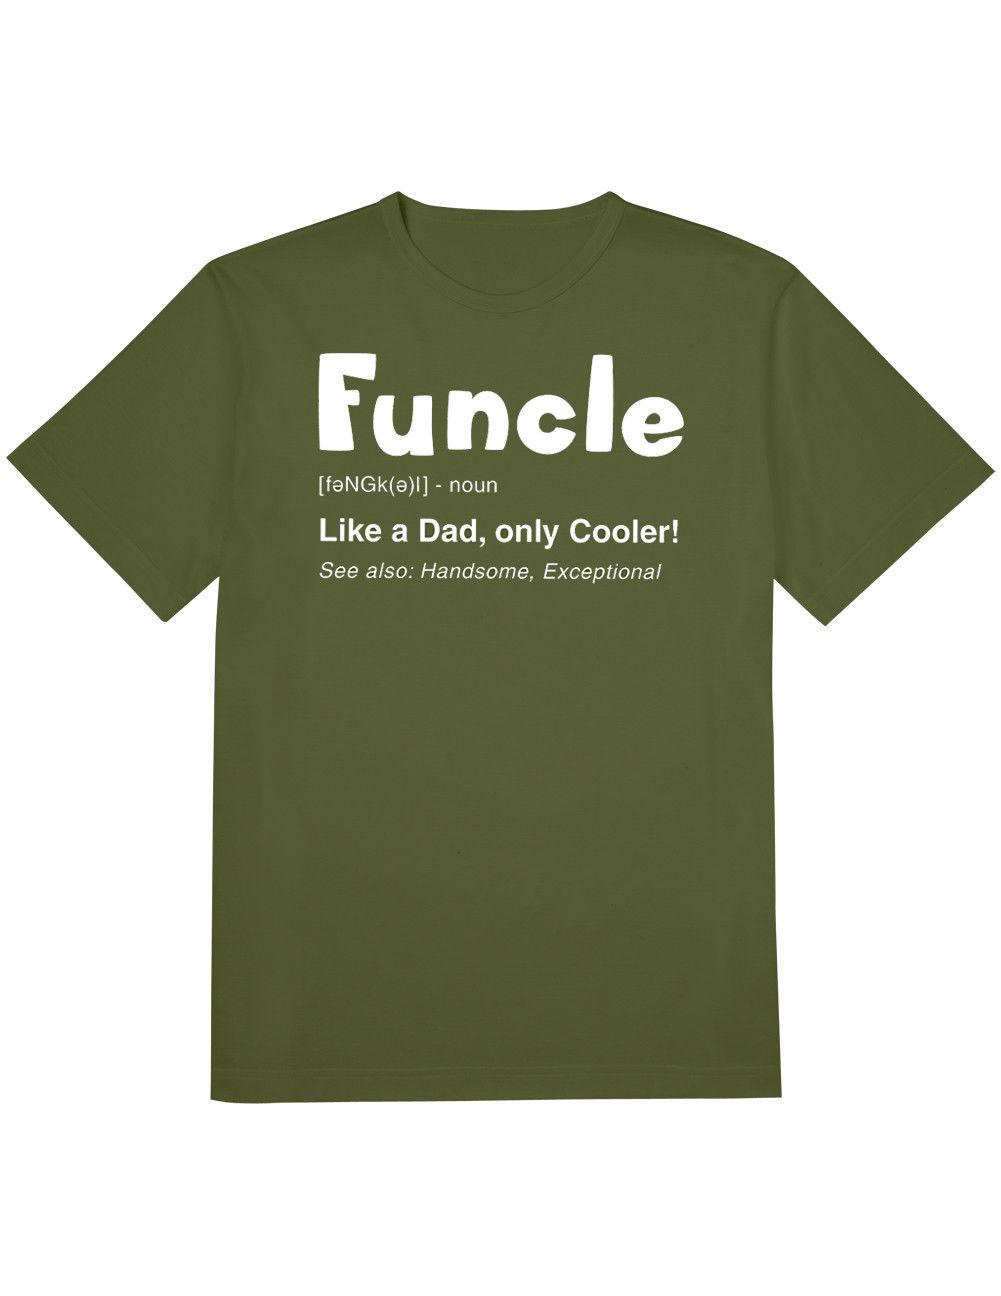 7b070a2c NEW NWT Funcle T-Shirt - Like a Dad Only Cooler! Handsome Short Sleeve 100%  Cotton Man Tee Tops Short Sleeve Round Neck Movement Online with  $14.96/Piece on ...